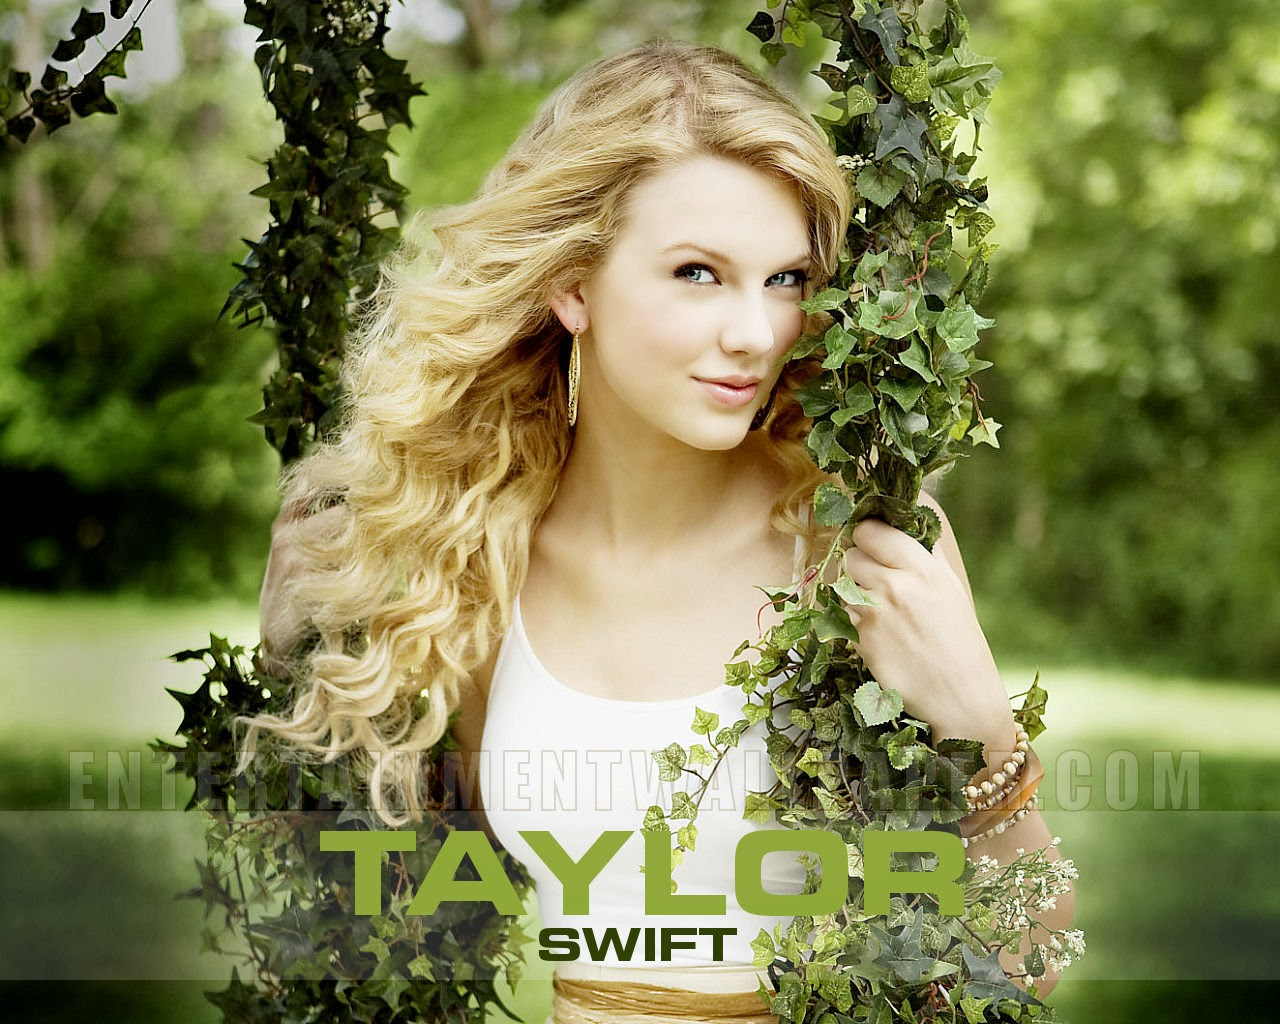 Top hd wallpapers taylor swift latest hd wallpapers 2013 taylor swift latest hd wallpapers 2013 voltagebd Gallery